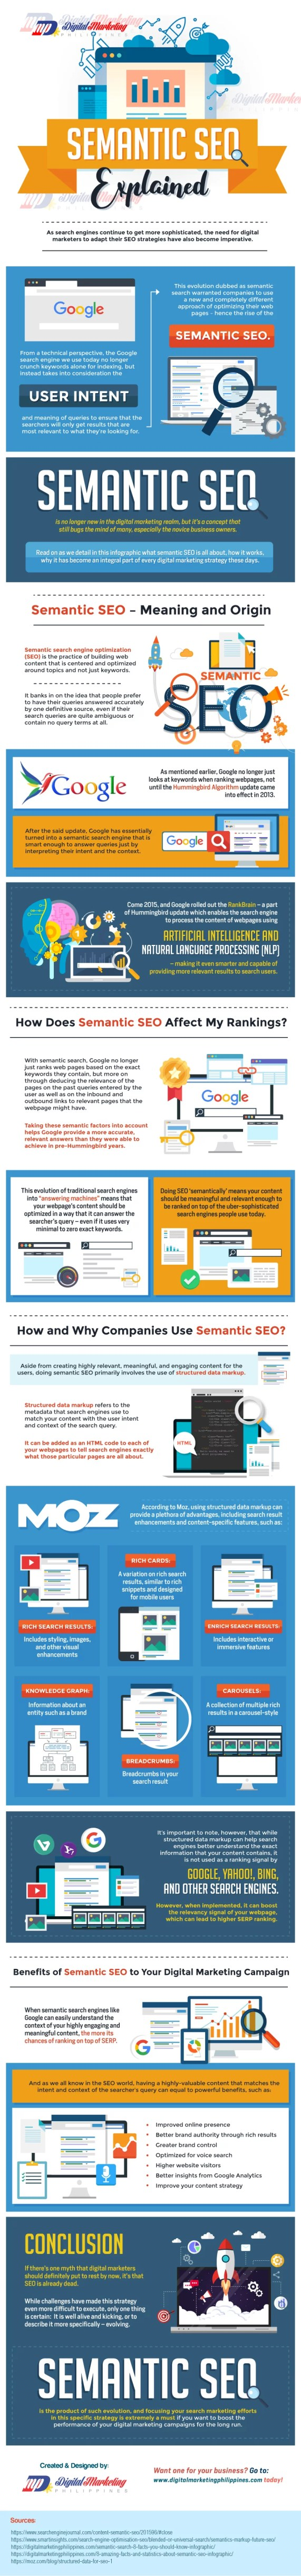 Semantic SEO Explained (Infographic) - An Infographic from Digital Marketing Philippines